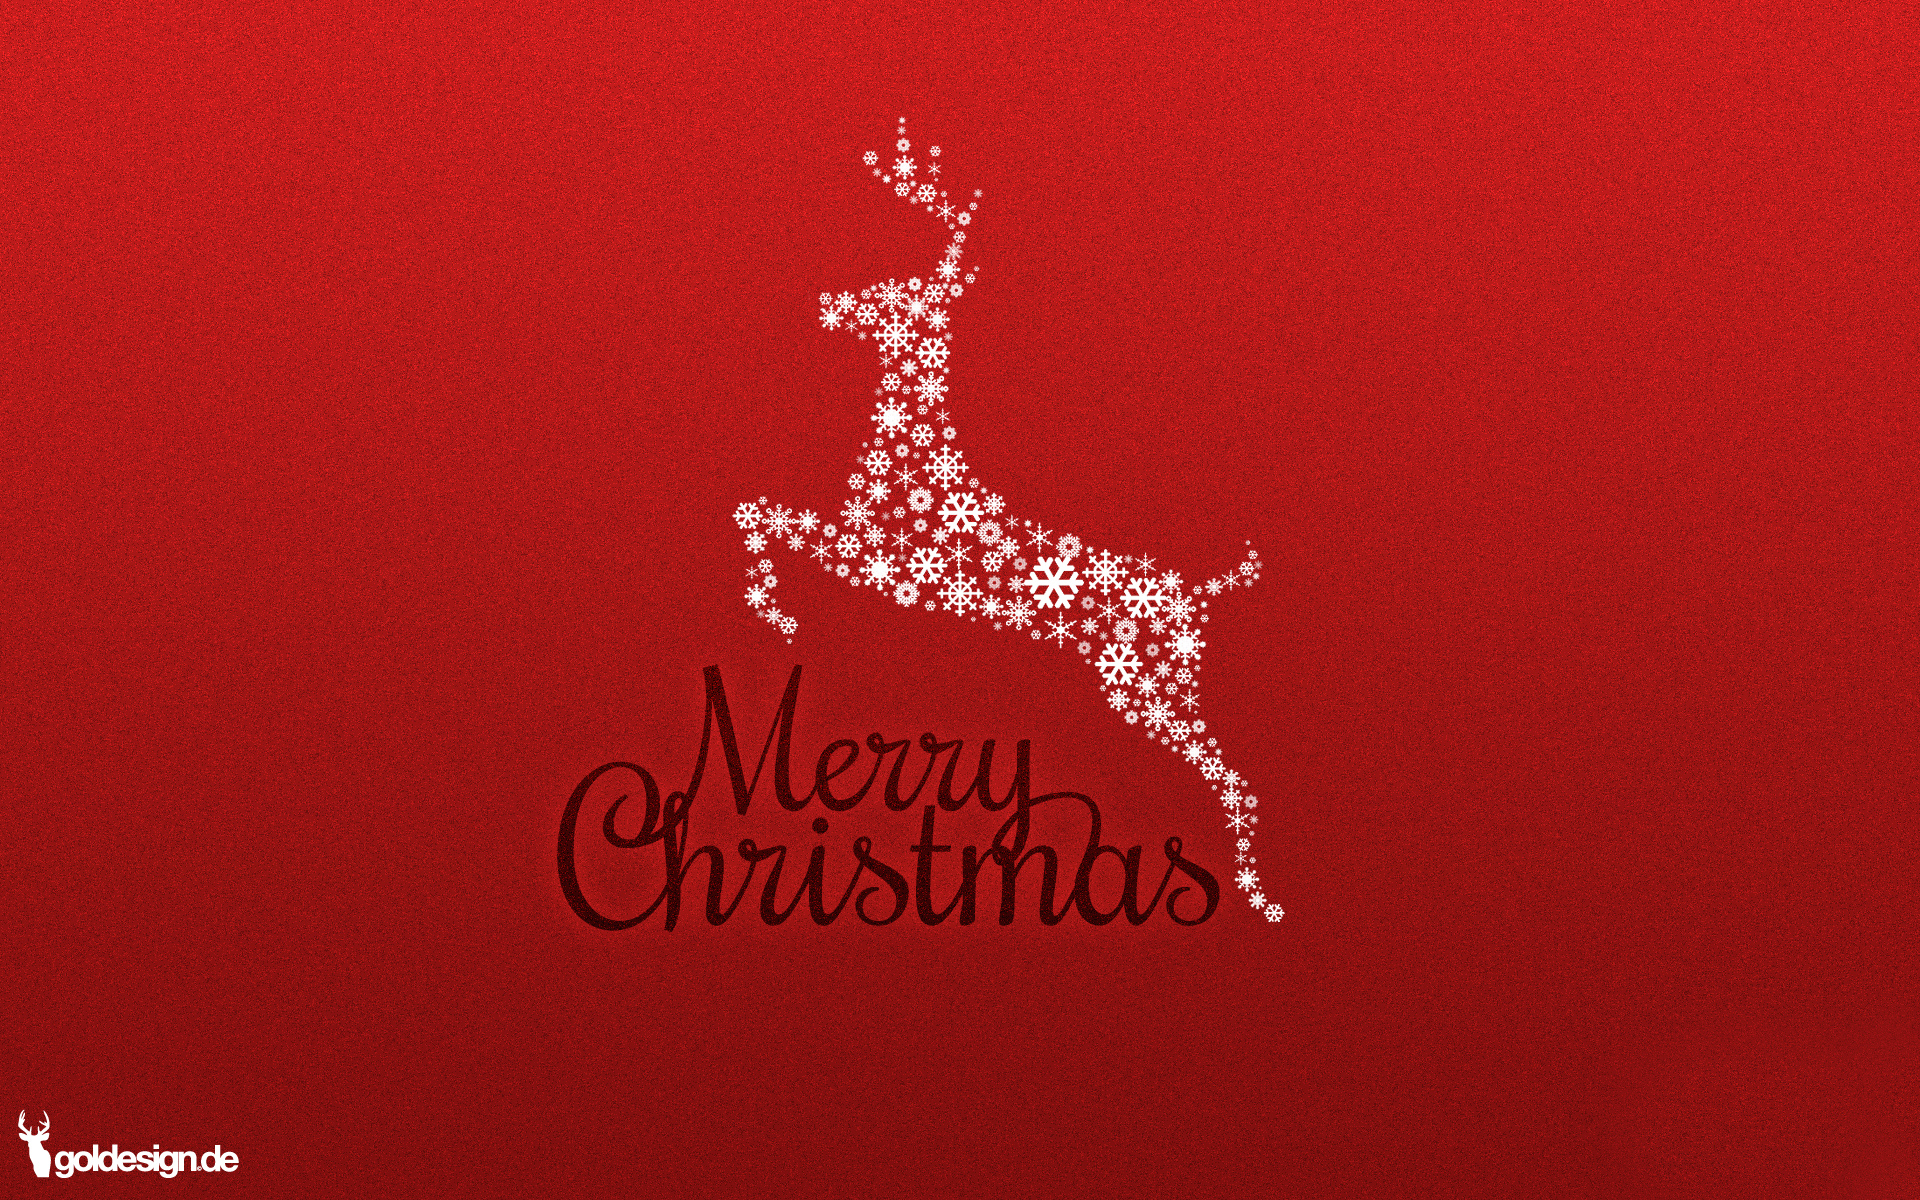 2011 Merry Christmas Wallpapers HD Wallpapers 1920x1200